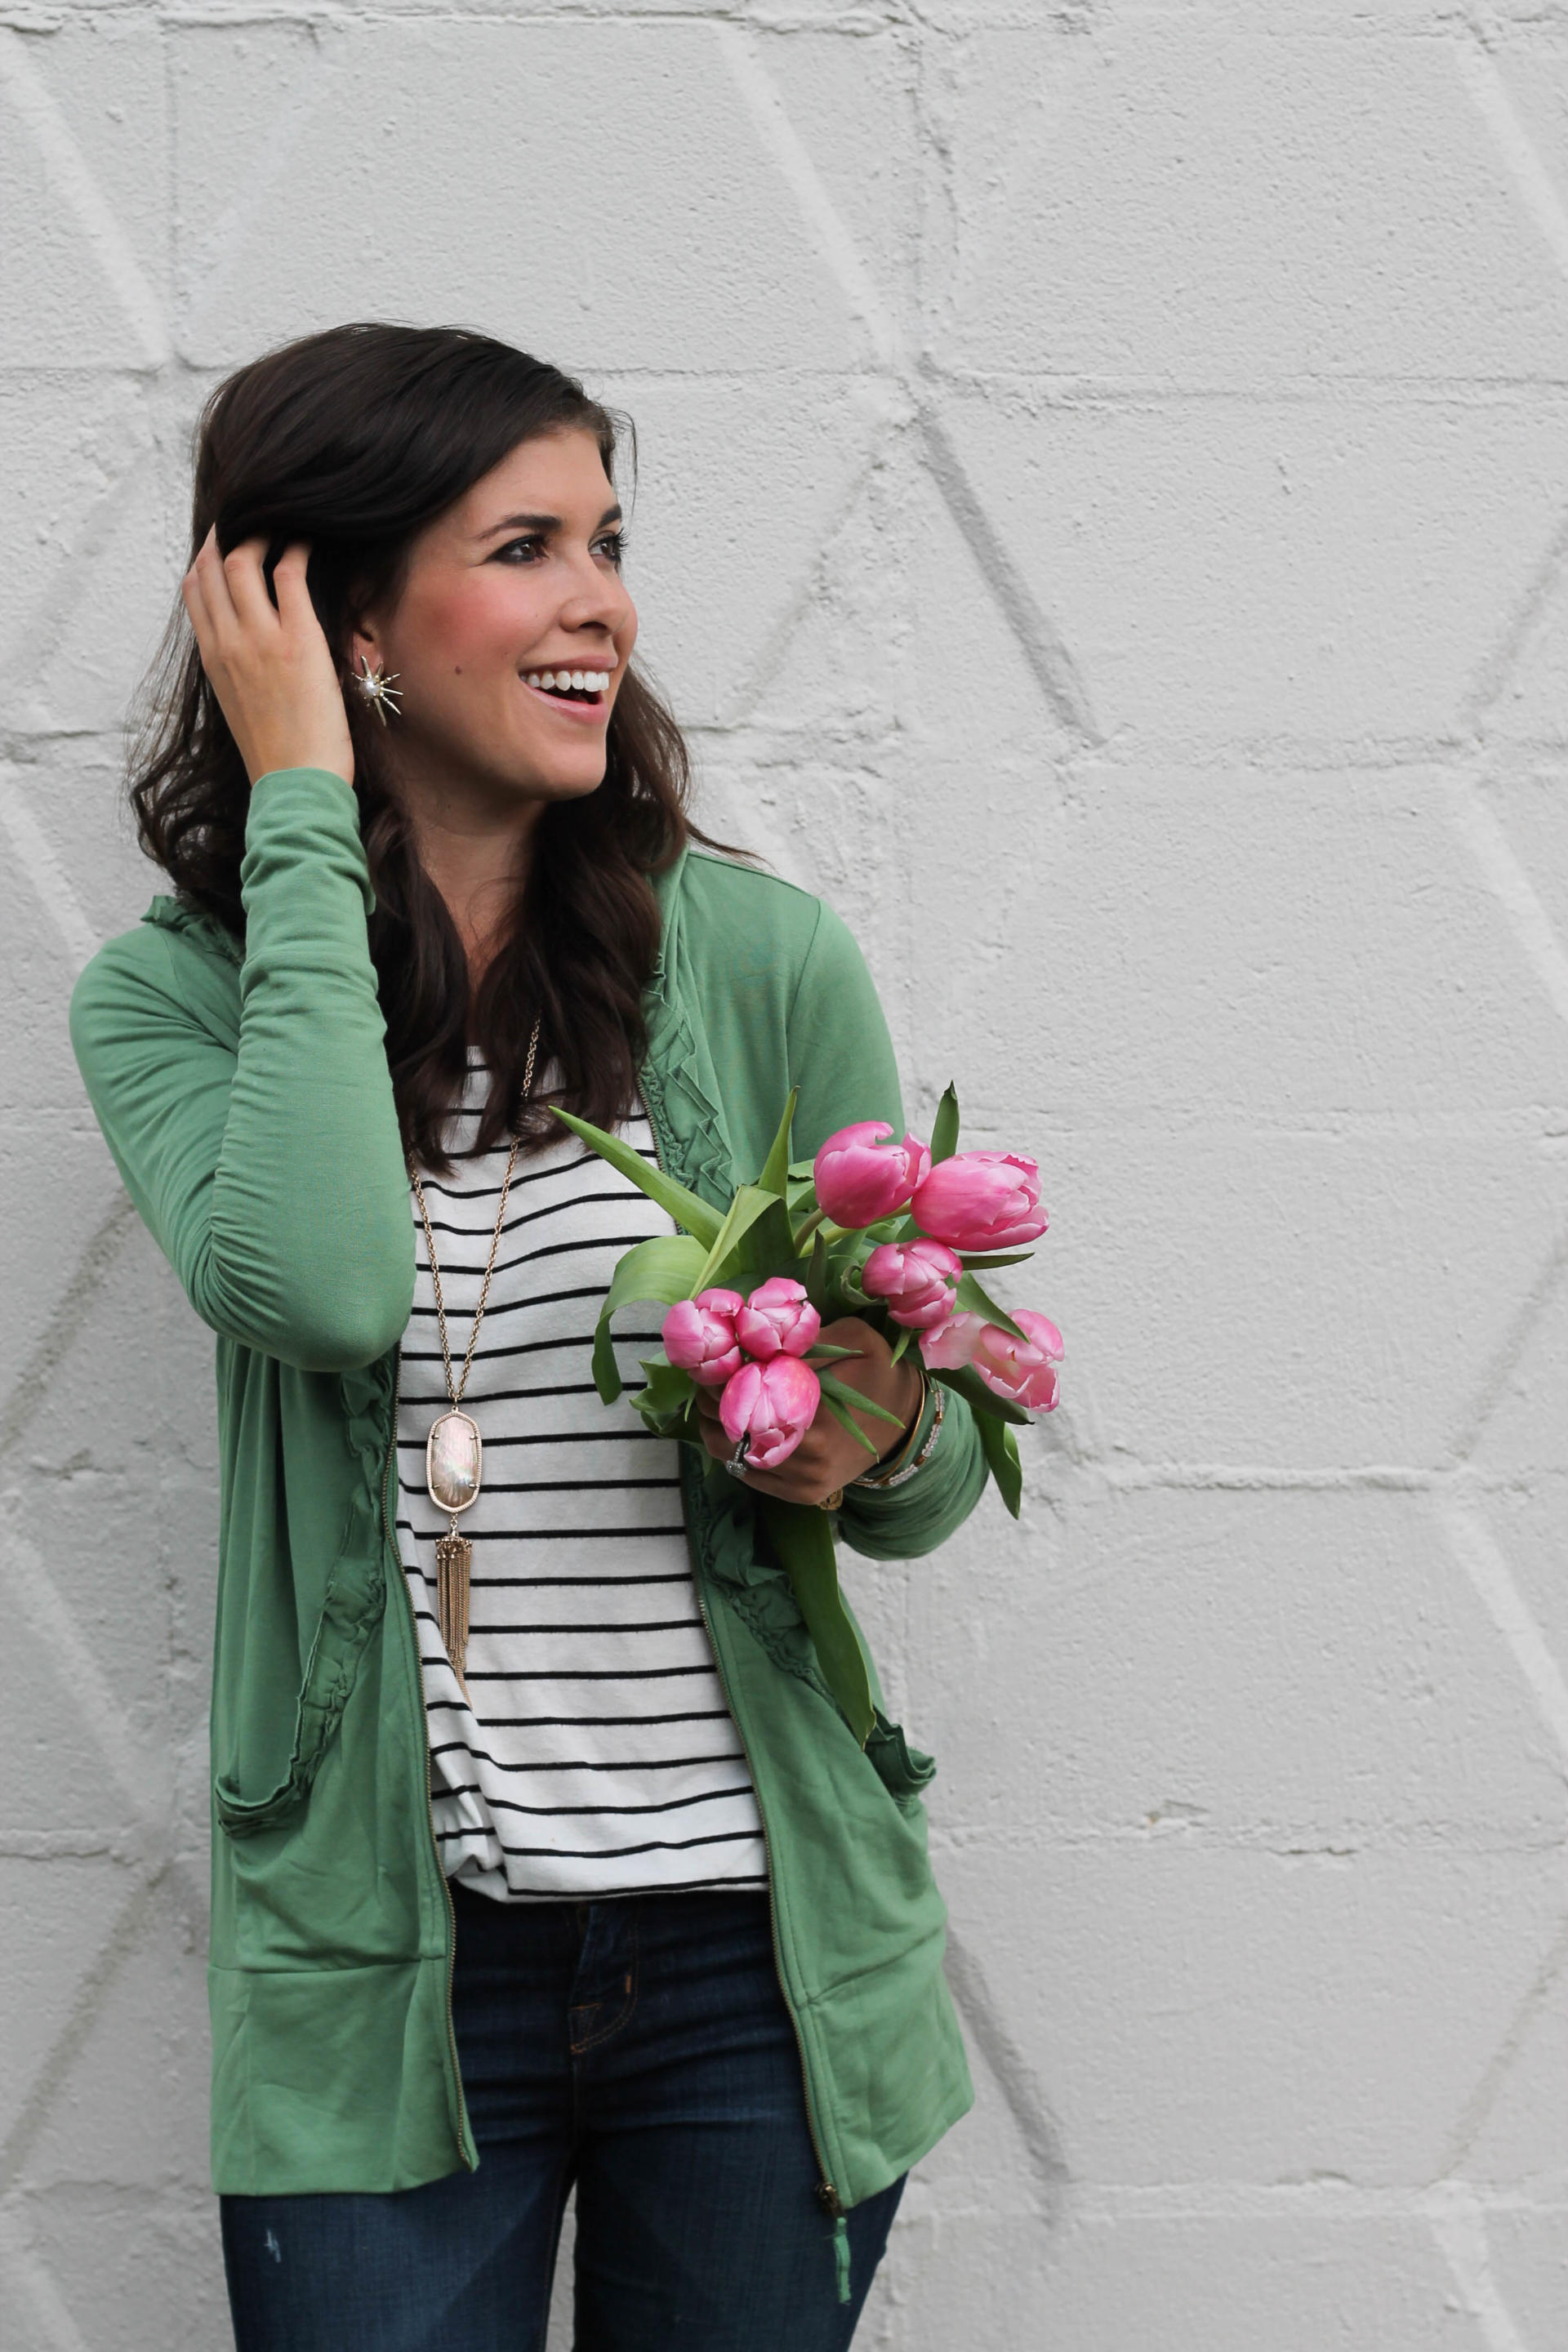 "<img class=""alignnone size-full wp-image-3136"" src=""http://stylewaltz.com/wp-content/uploads/2017/03/IMG_7478.jpg"" alt=""A Green Spring Jacket"" />"